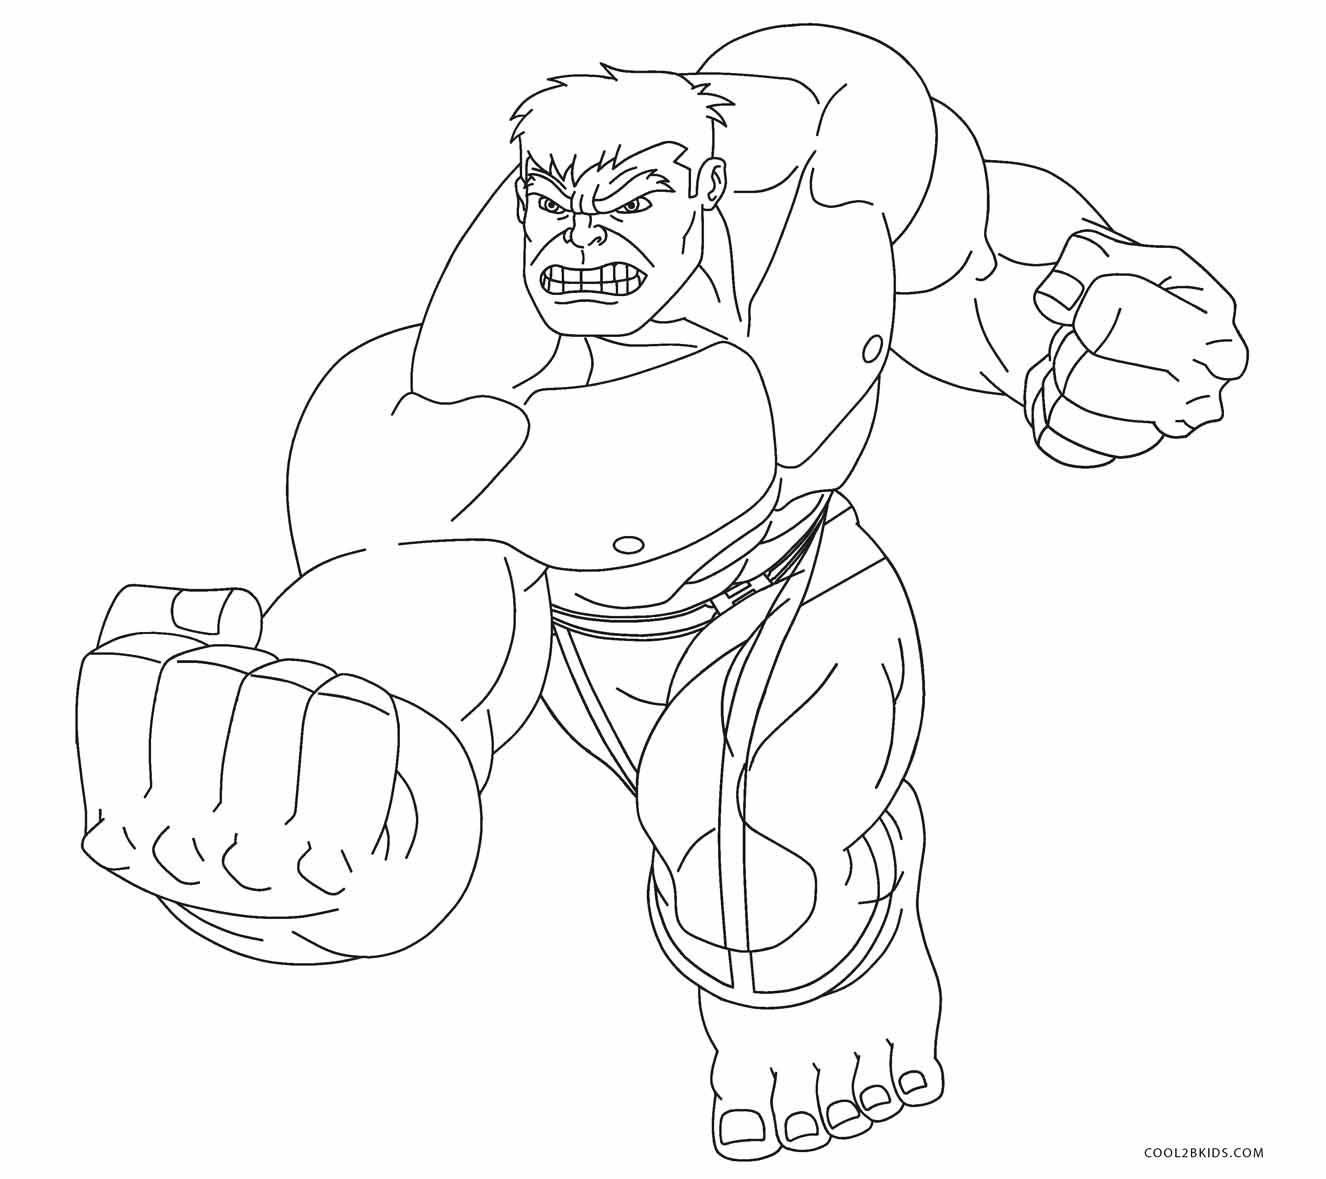 hulk coloring pages to print free free printable coloring pages hulk 2015 hulk free print to coloring pages